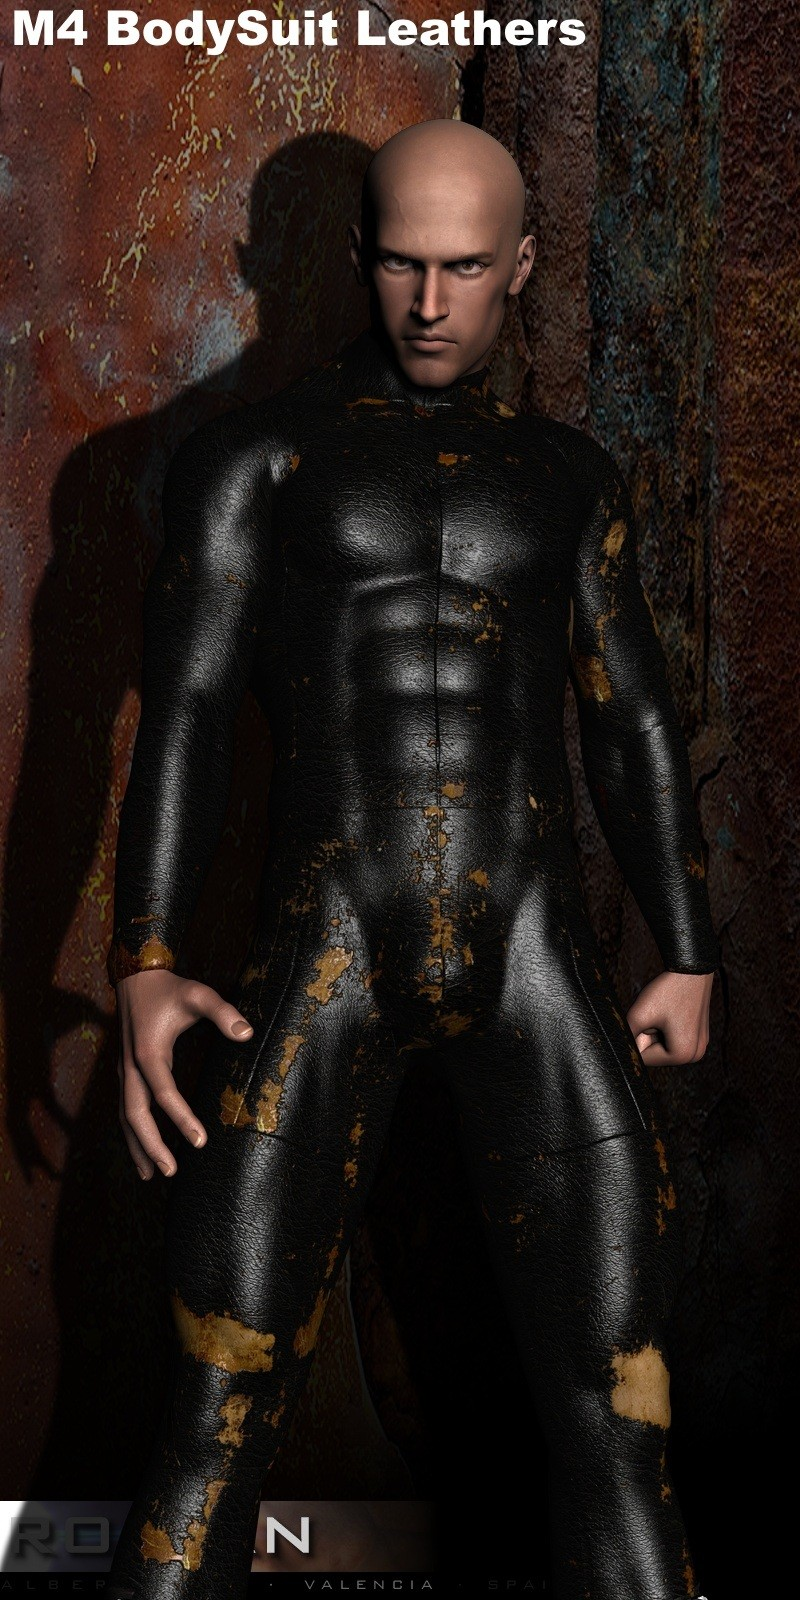 M4 BodySuit Leathers